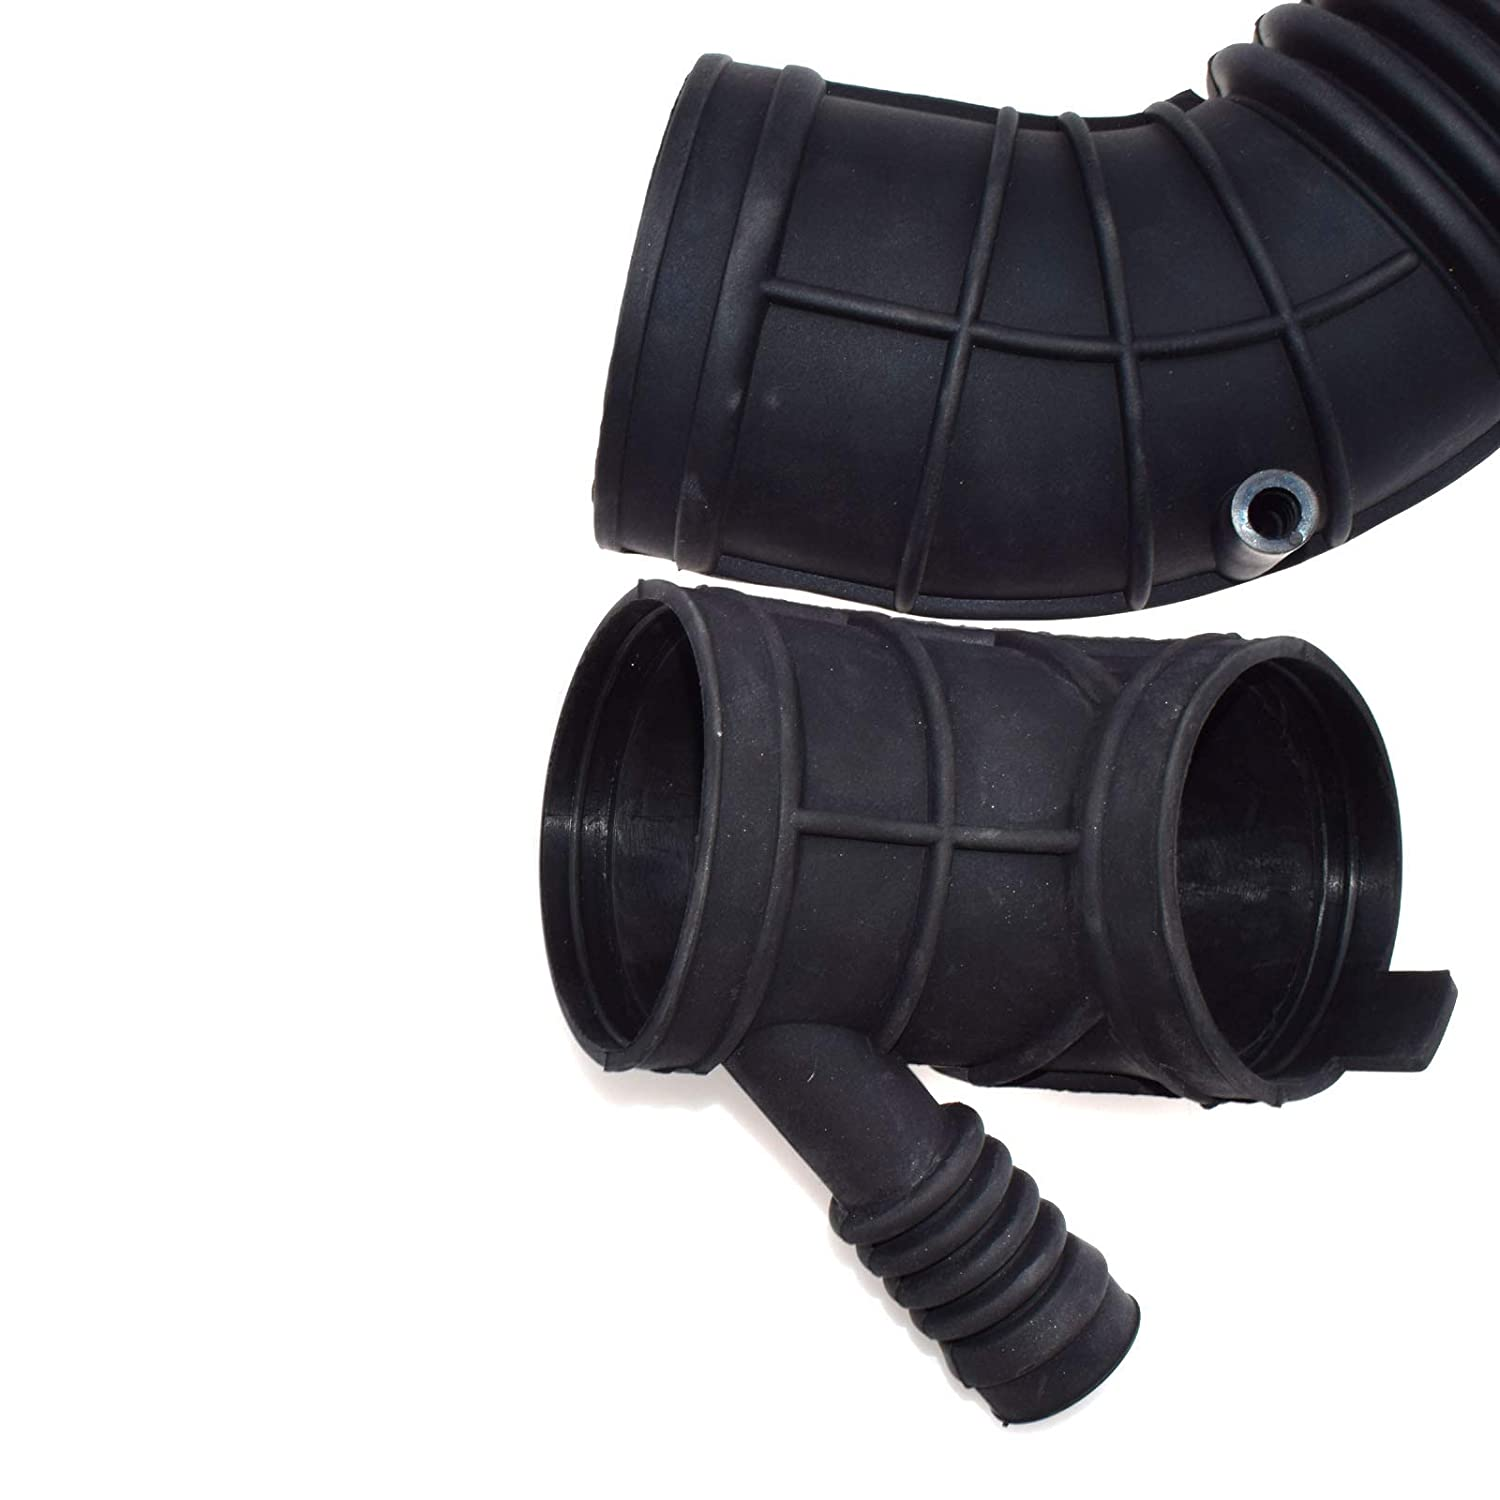 New 2pcs For BMWS E46 325i 330i 325xi 33xi 325Ci 325Xi Z3 2001 2002 2003 2004 2005 2006 Intake Air Flow Boot Hose Pipe 13541438761,13541438759